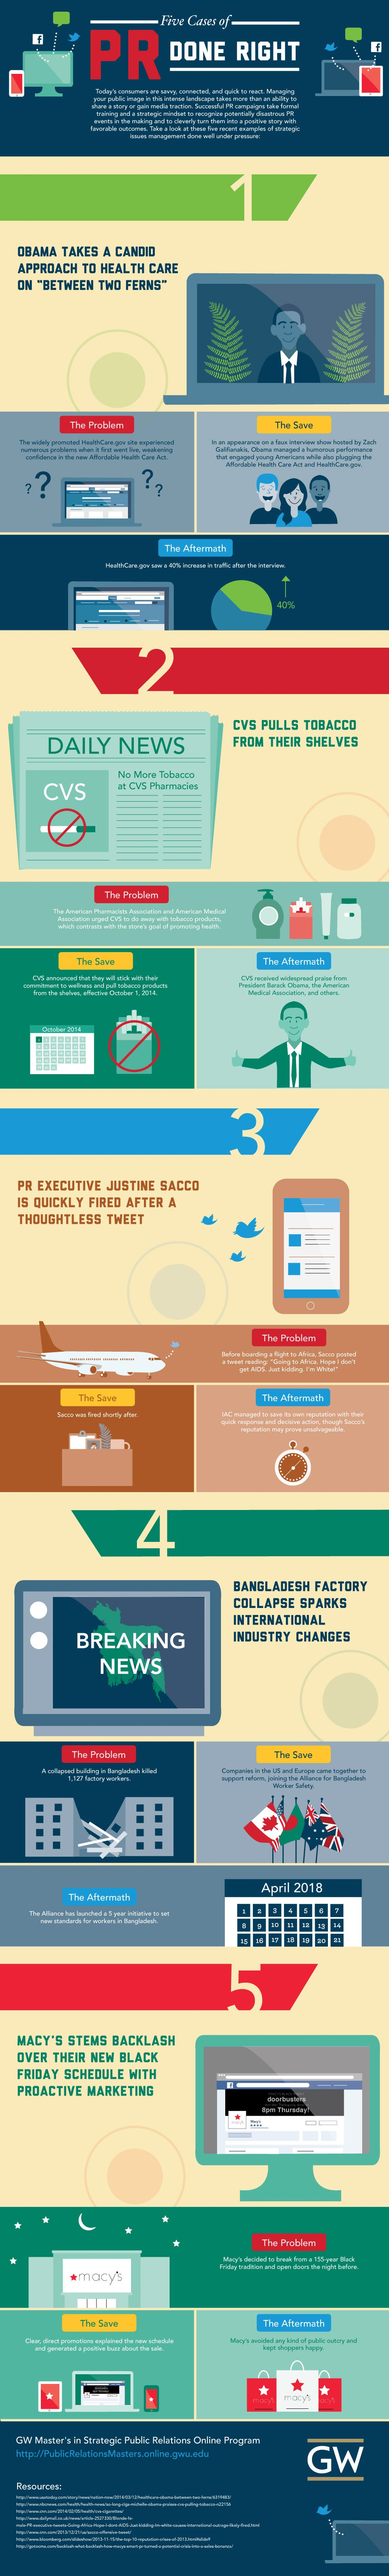 5 Cases of PR Done Right (Infographic)